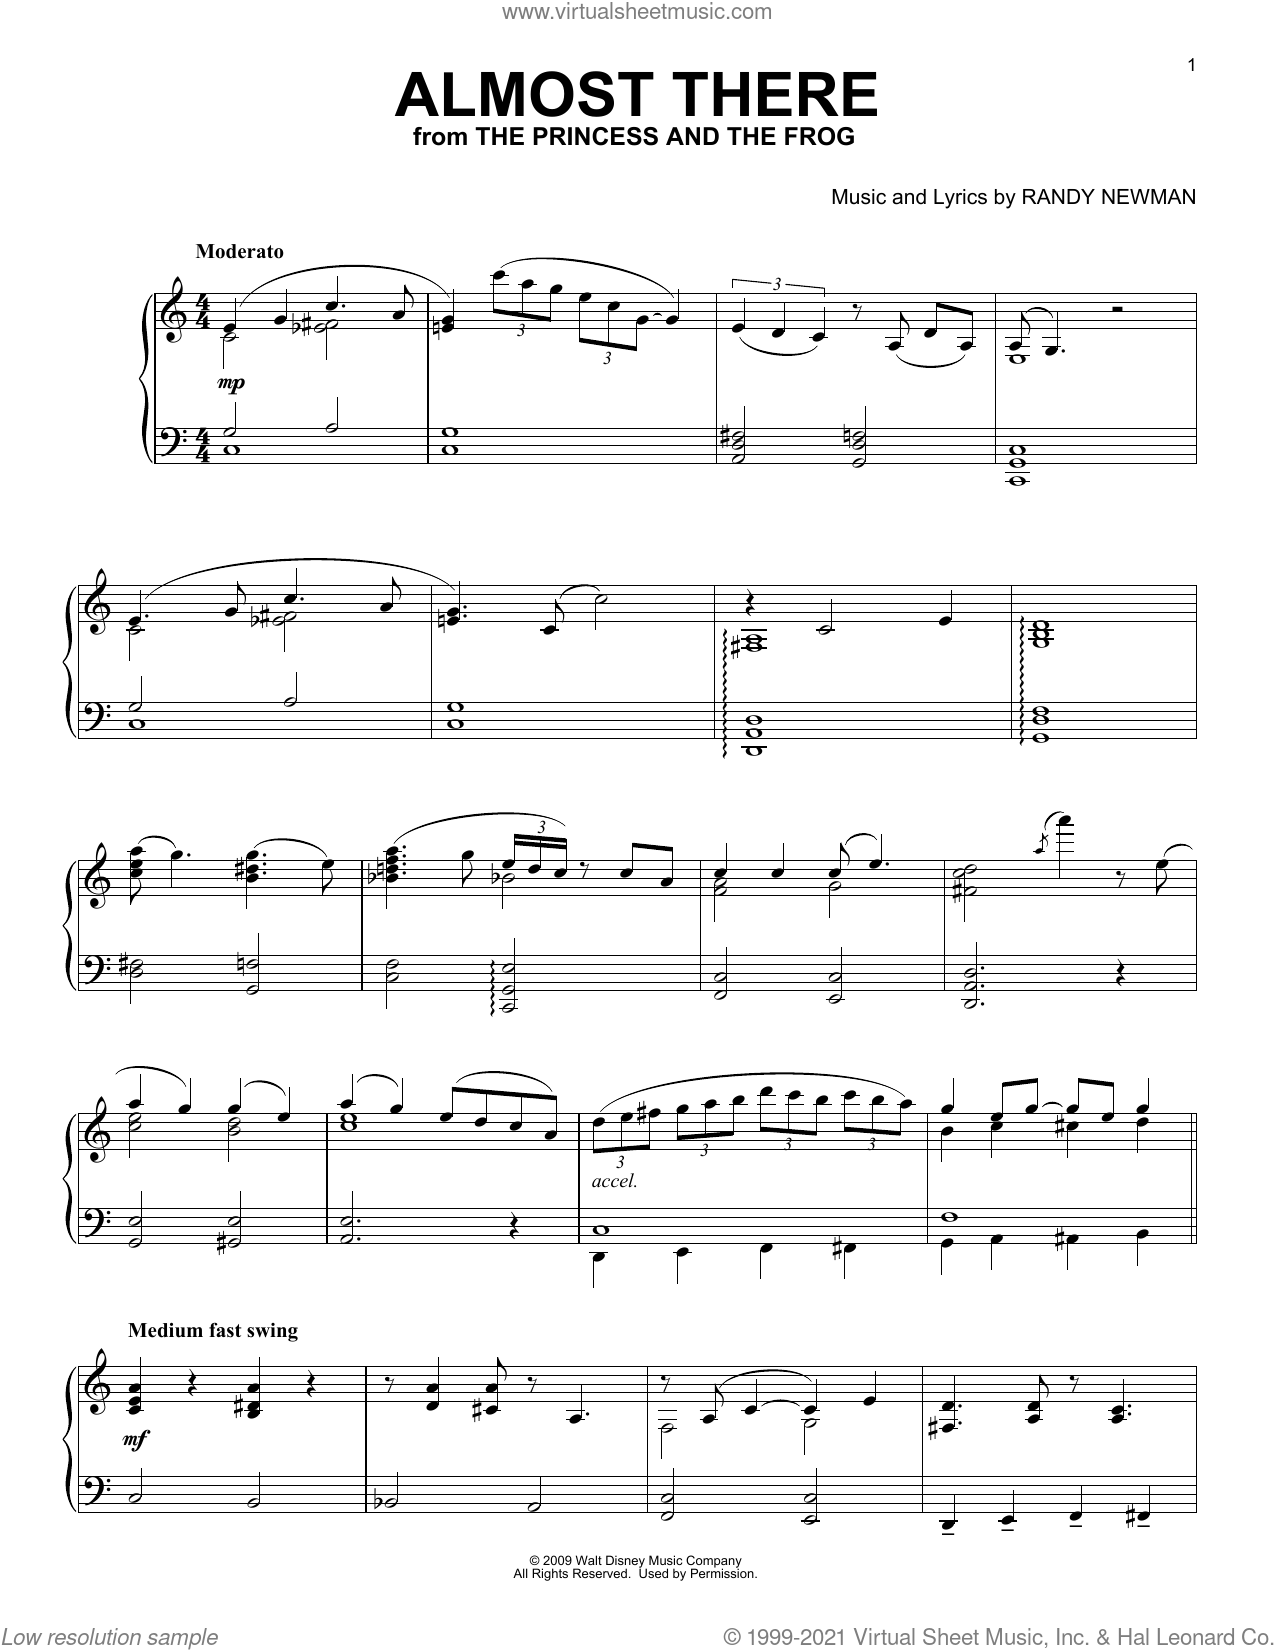 Almost There (from The Princess And The Frog) [Classical version] sheet music for piano solo by Randy Newman, classical score, intermediate skill level